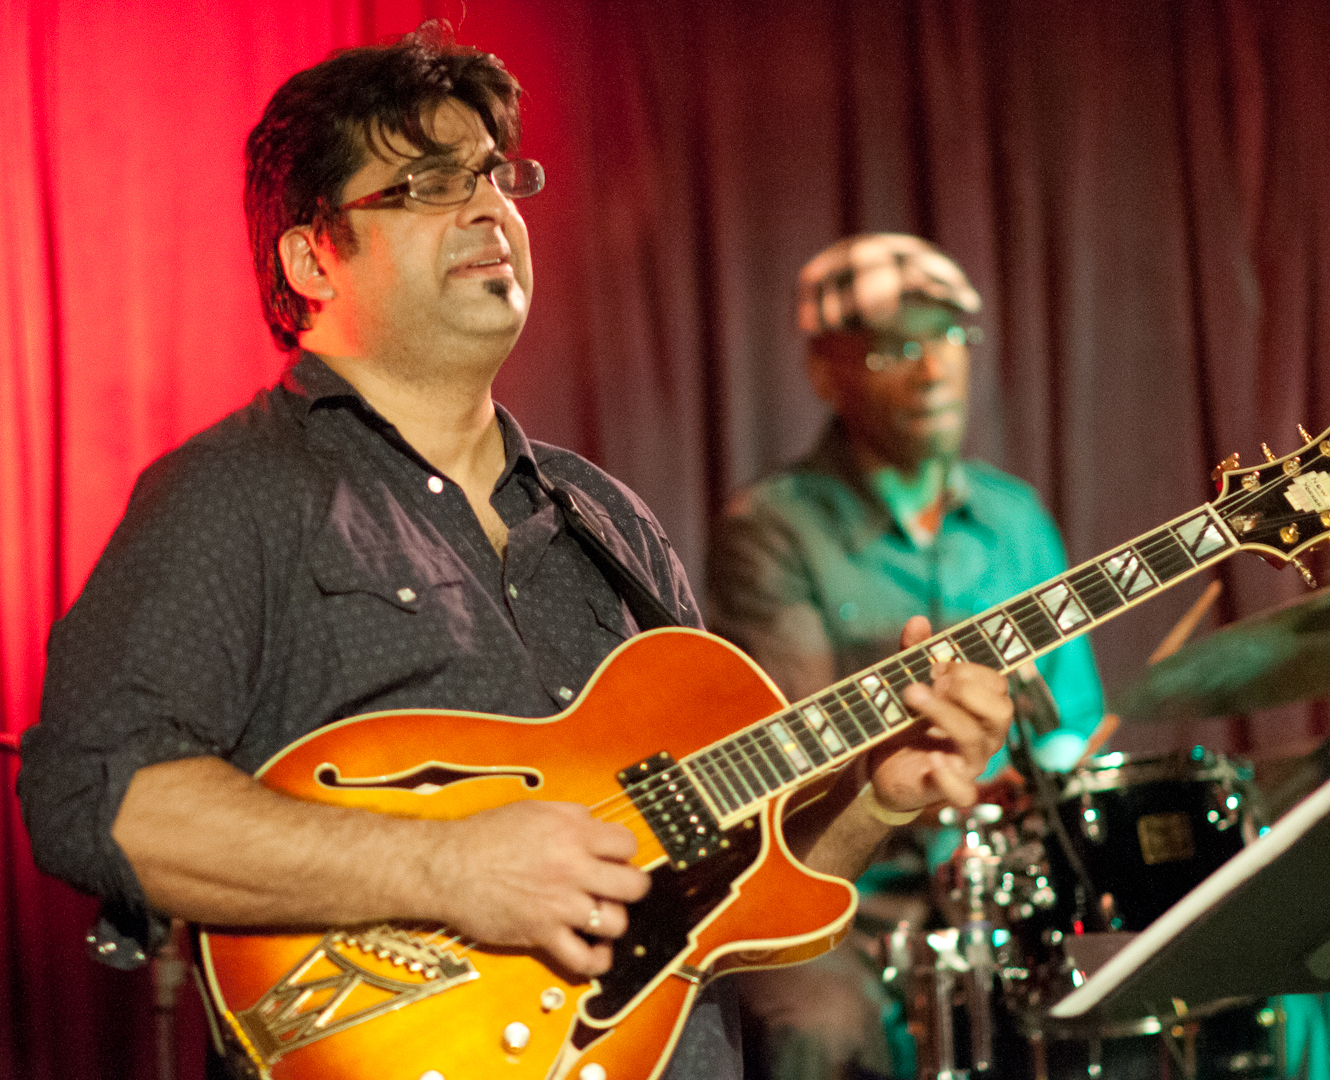 Rez Abbasi and Rudy Royston with the Rudresh Mahanthappa Quartet at the Winter Jazzfest 2012